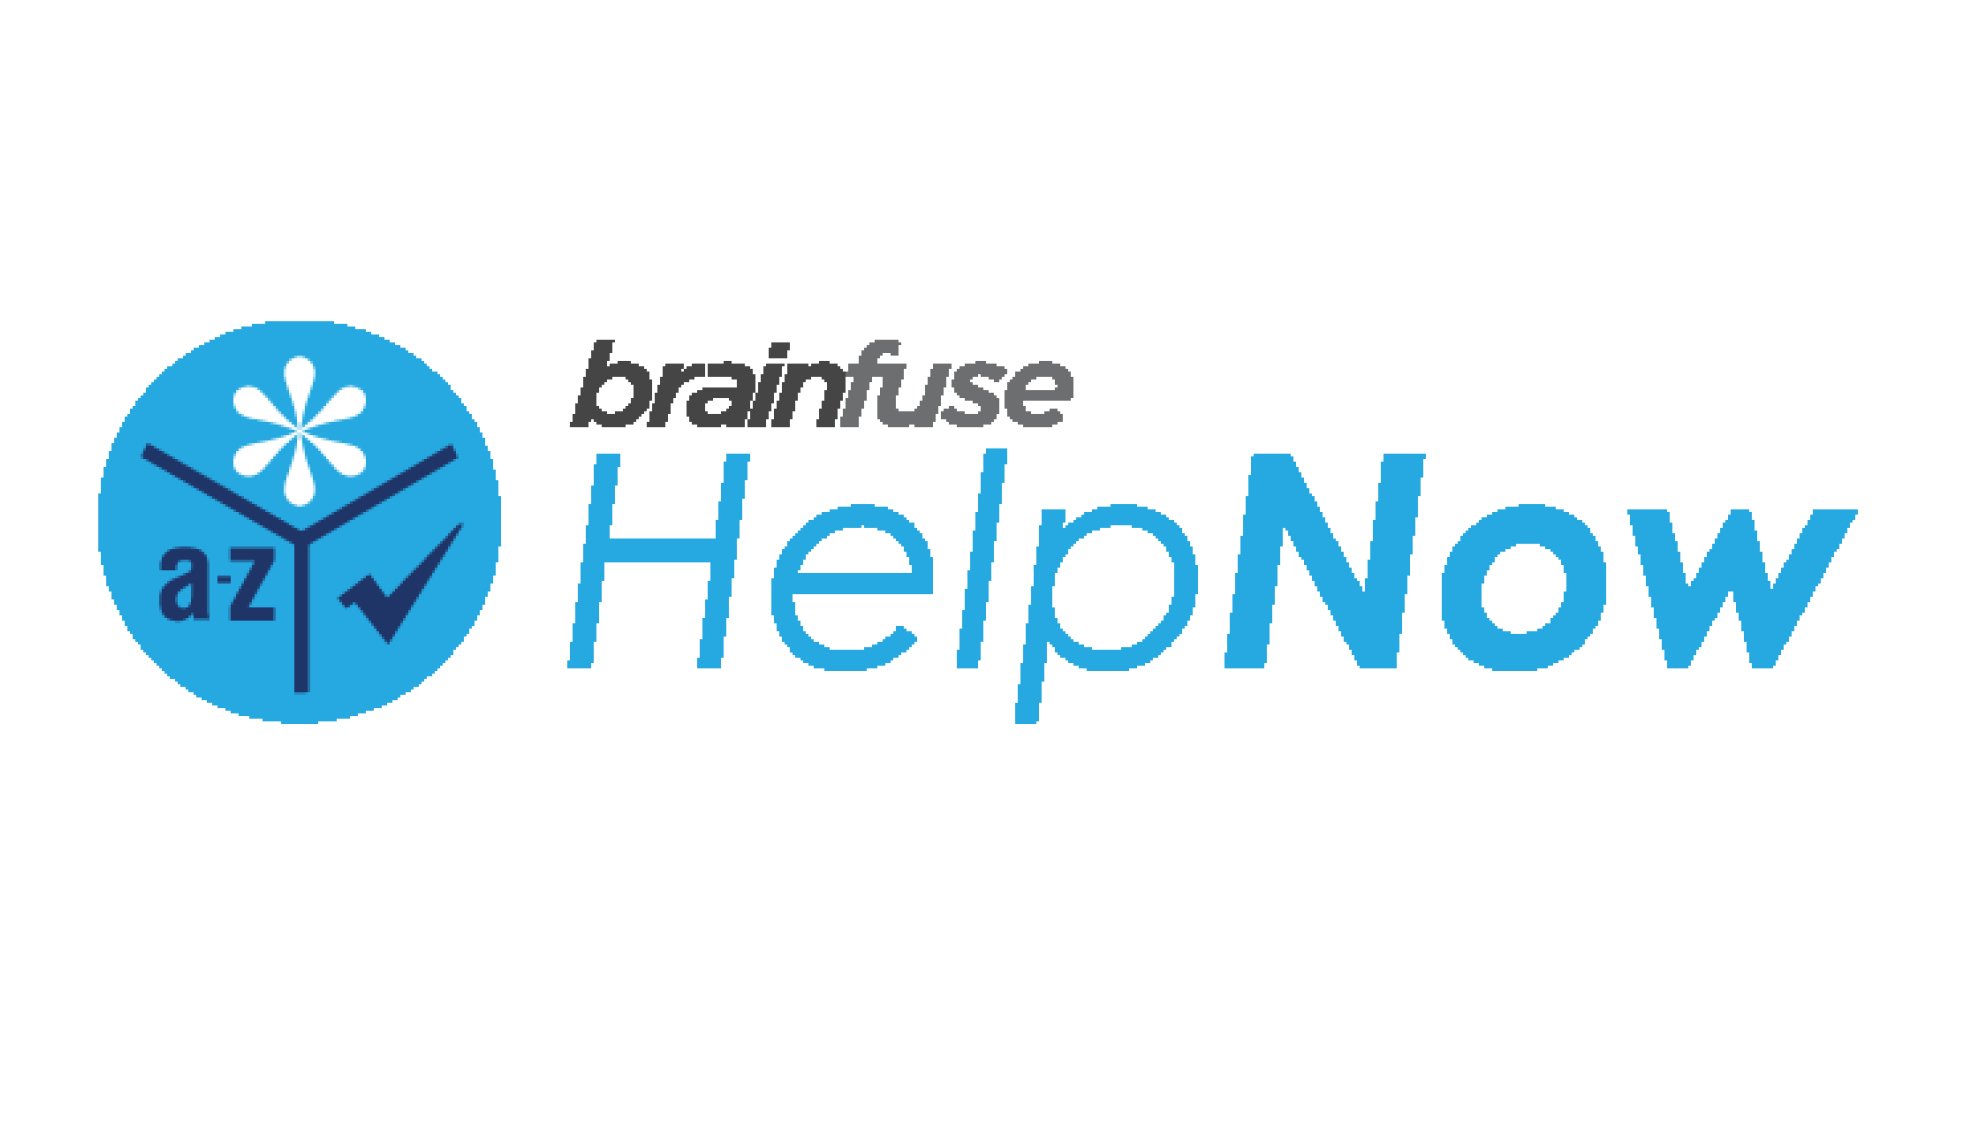 Use Brainfuse to learn and grow, at any age!